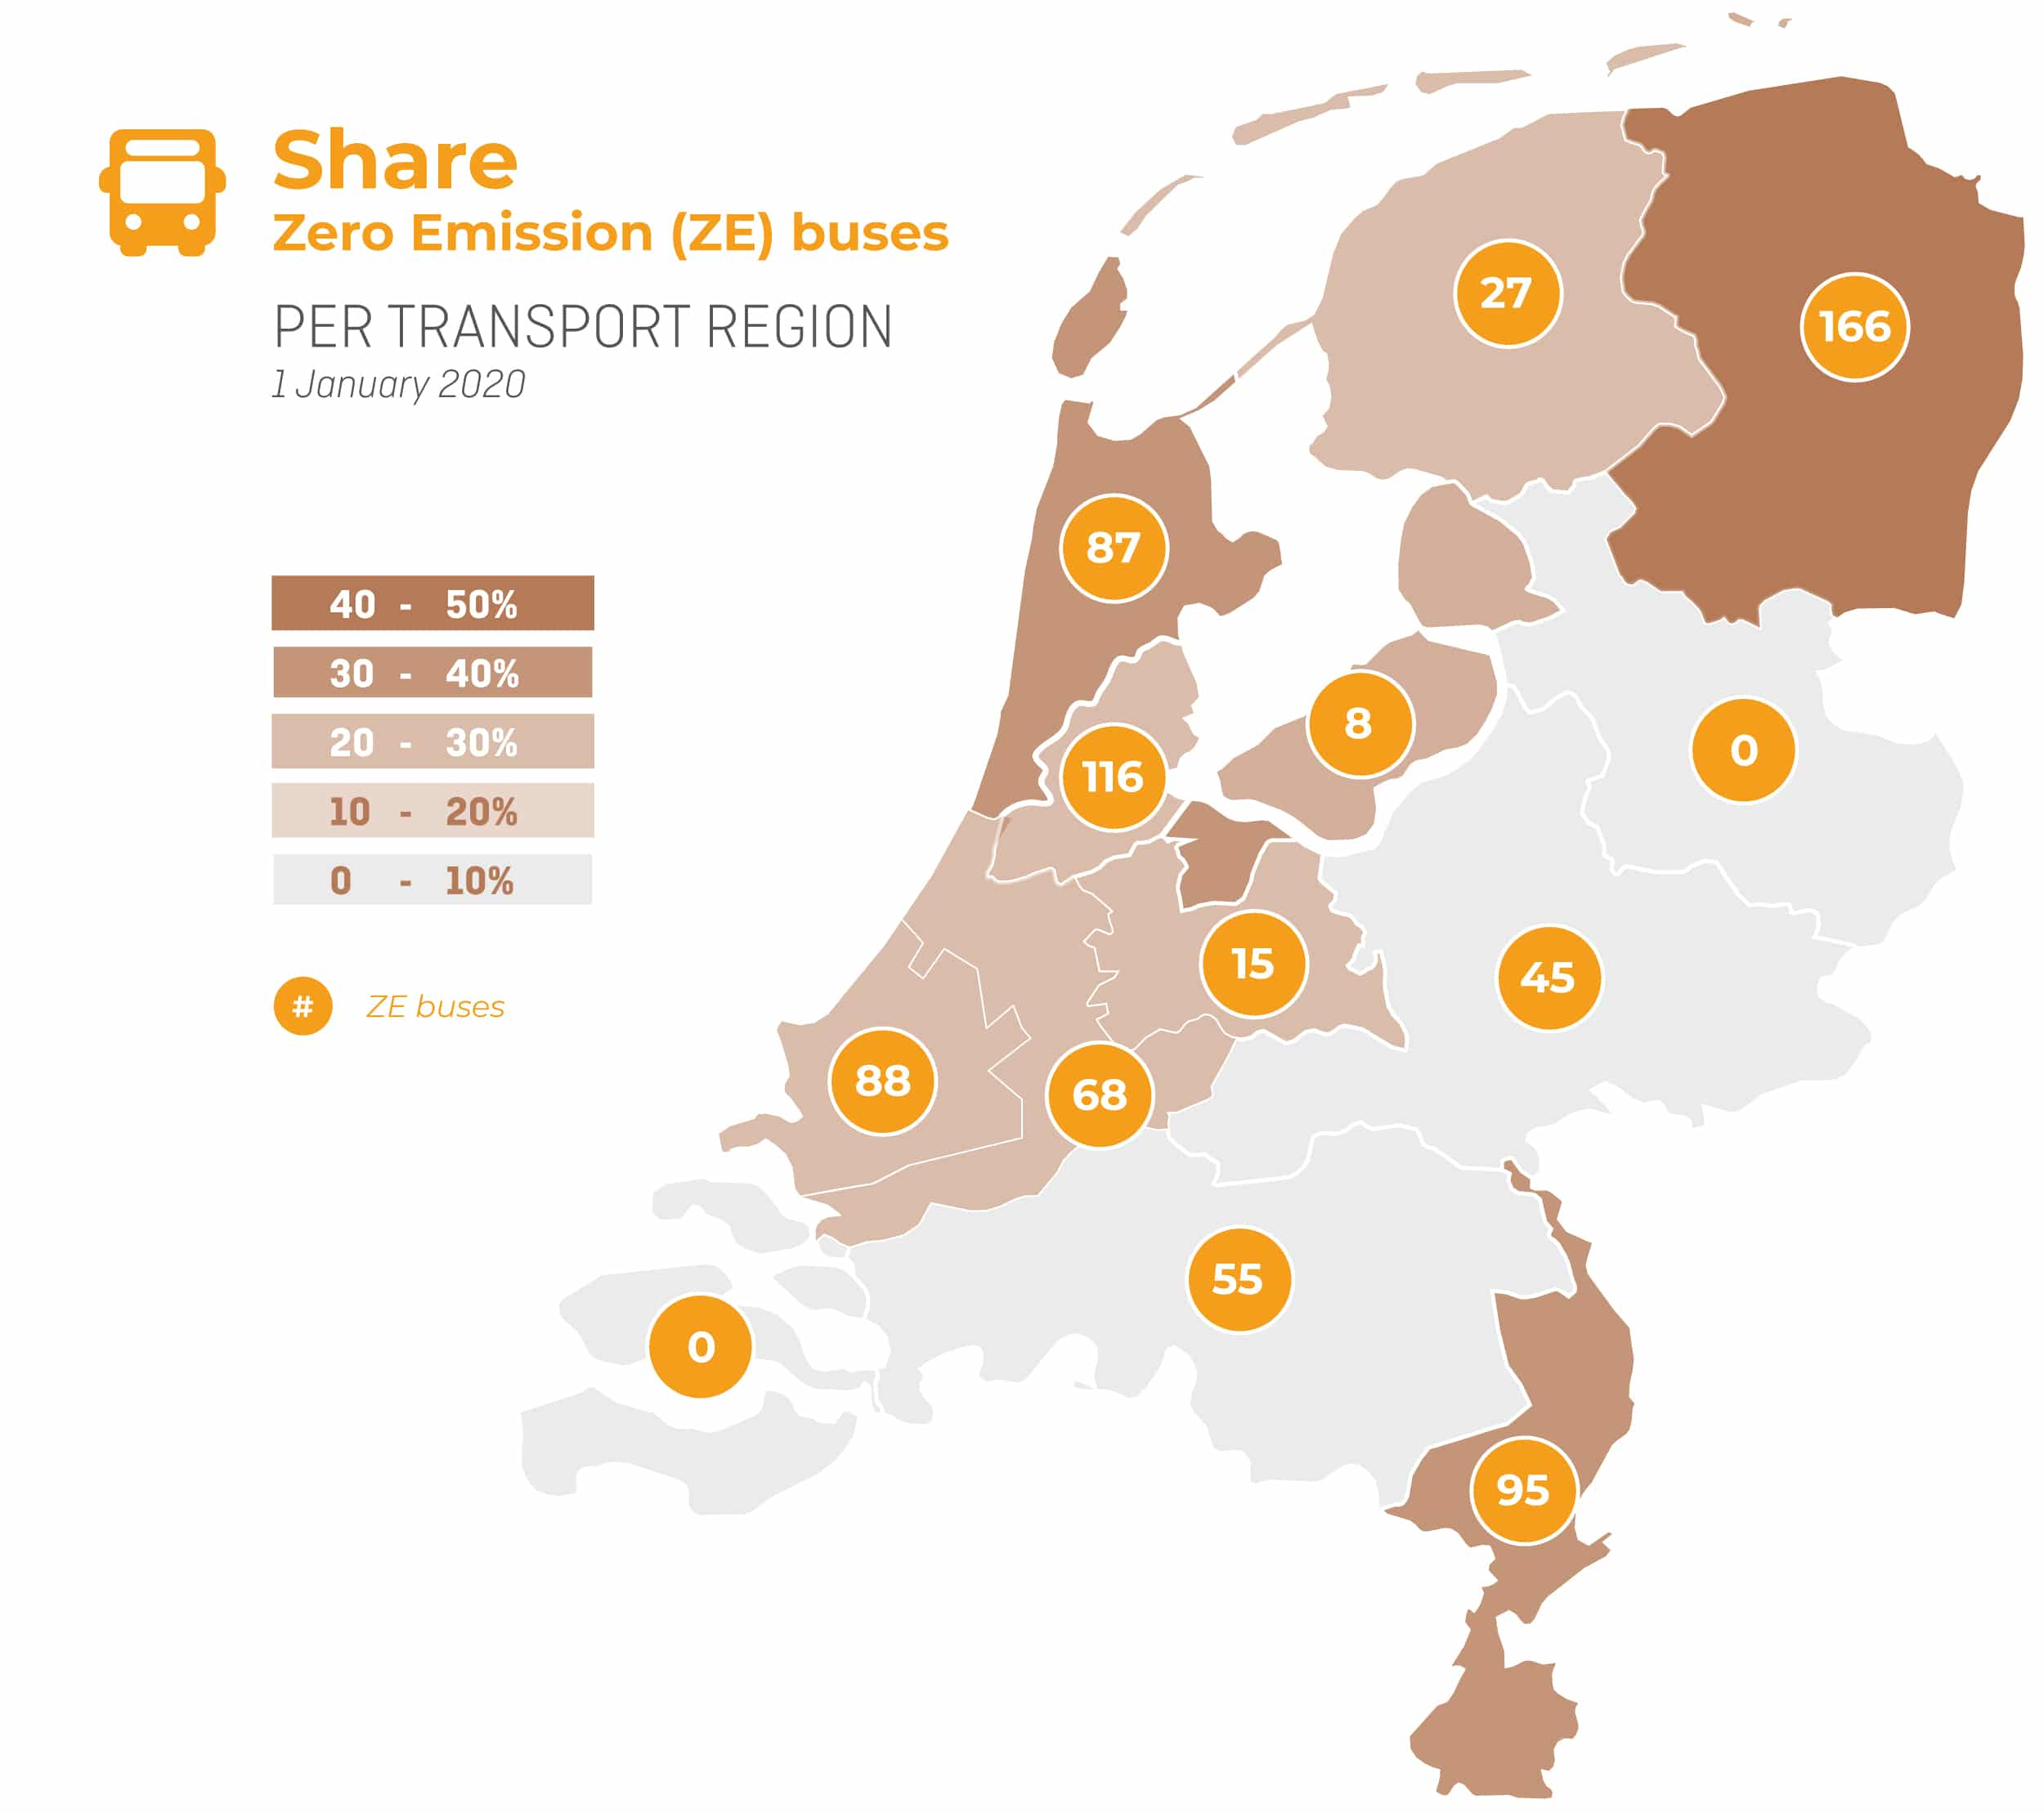 Share ZE buses Netherlands